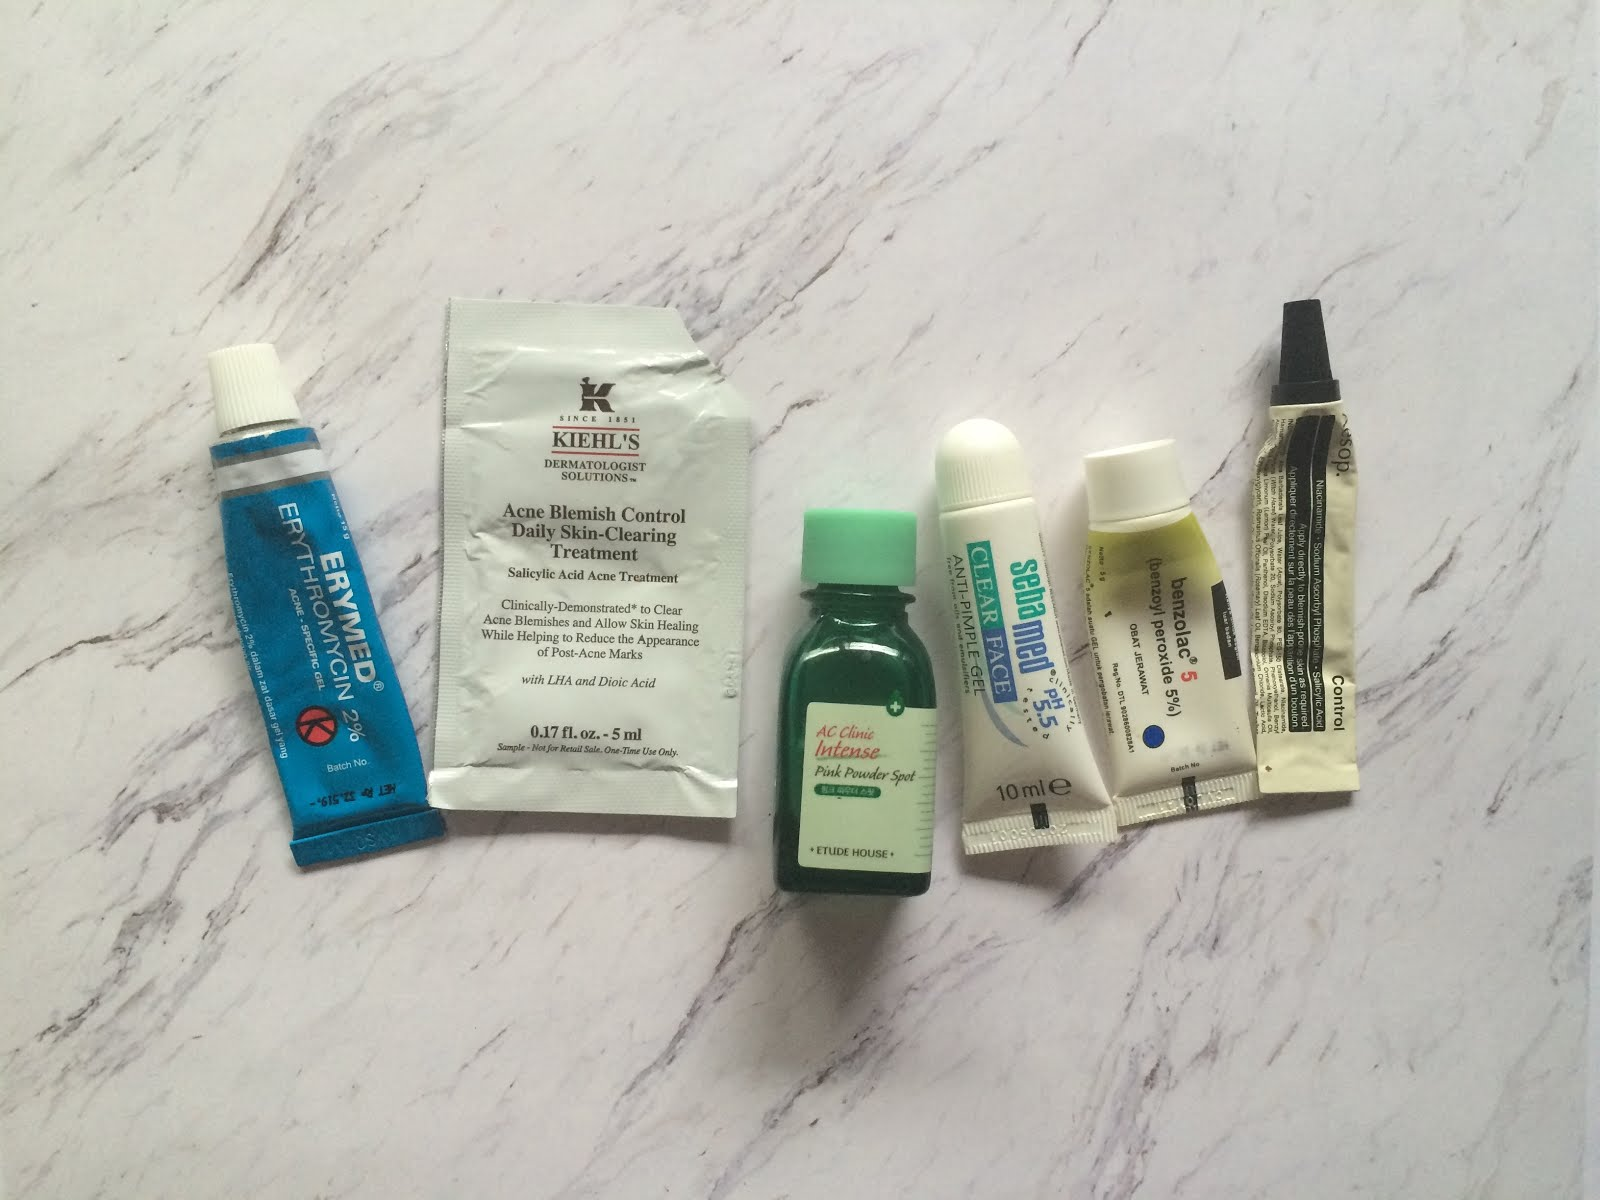 5b3be46aea86 From lesft to right  Erymed, Kiehl s Acne Blemish Control, Etude House AC  clinic Intense Pink Powder, Sebamed Clear Face Anti Pimple Gel, Benzolac,  ...